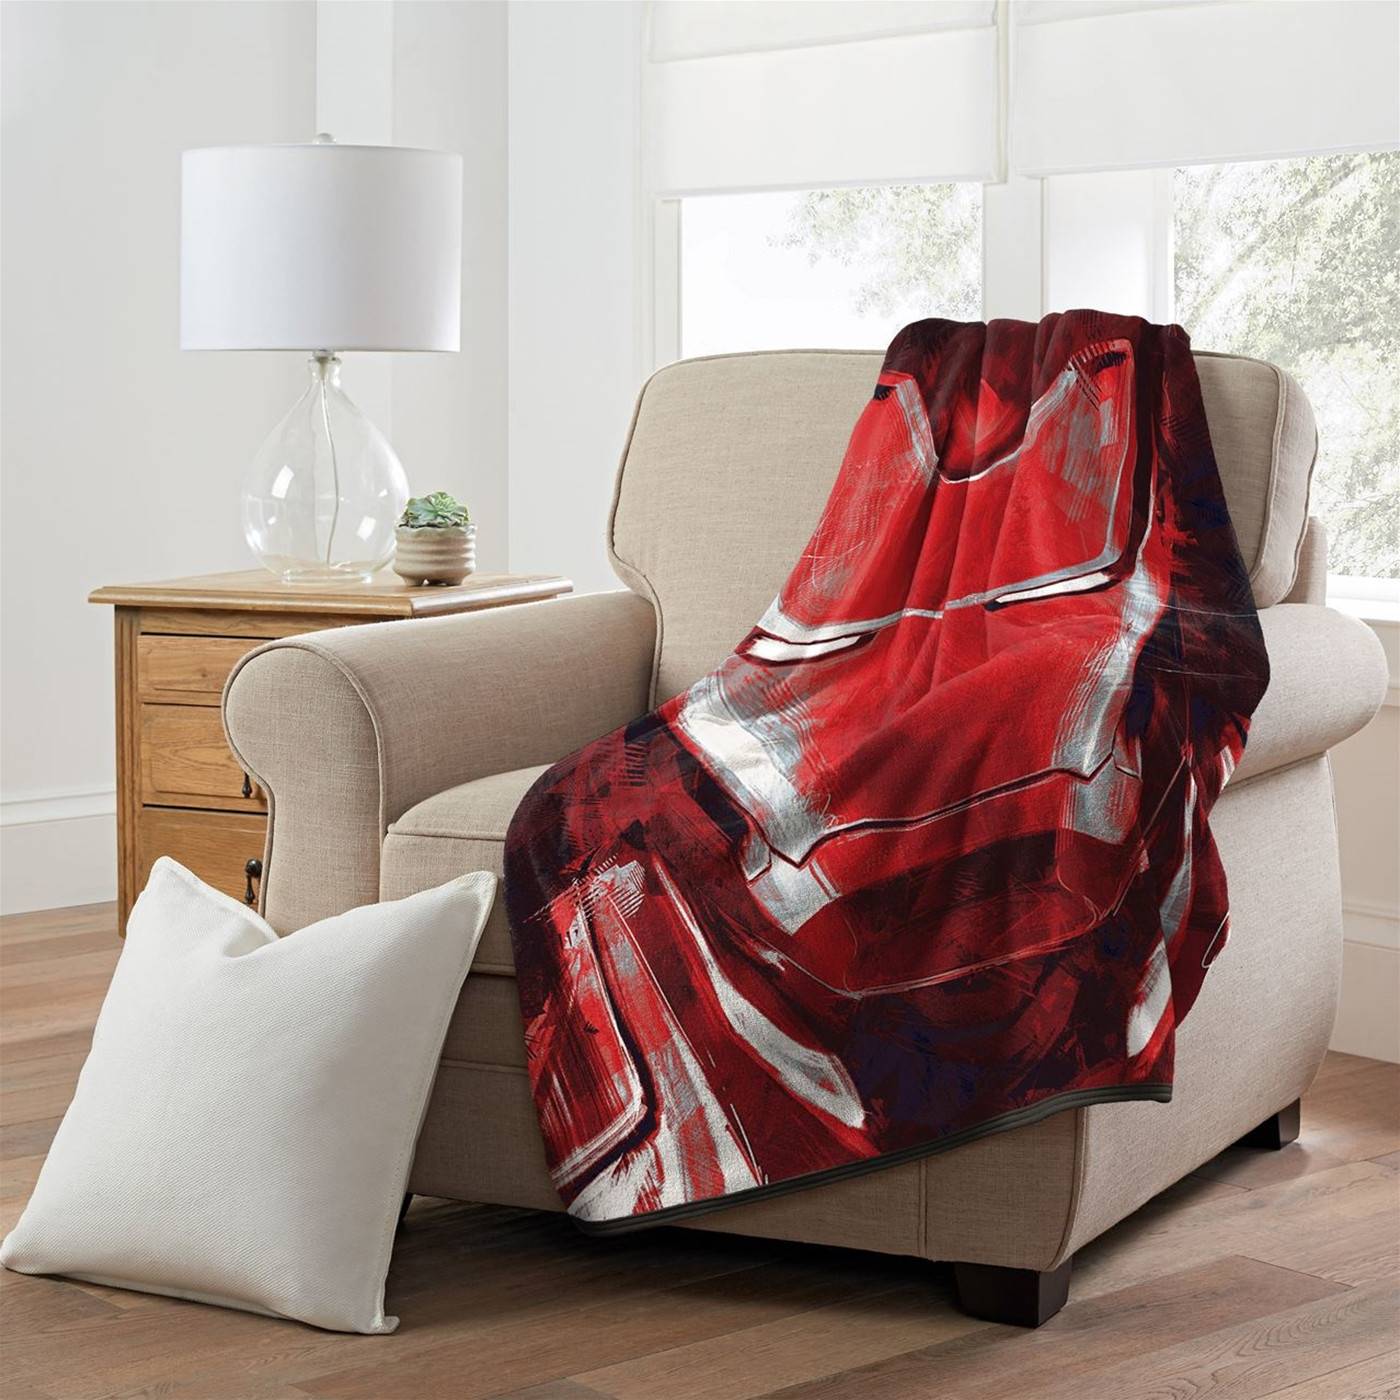 Avengers Iron Man's Threat Blanket